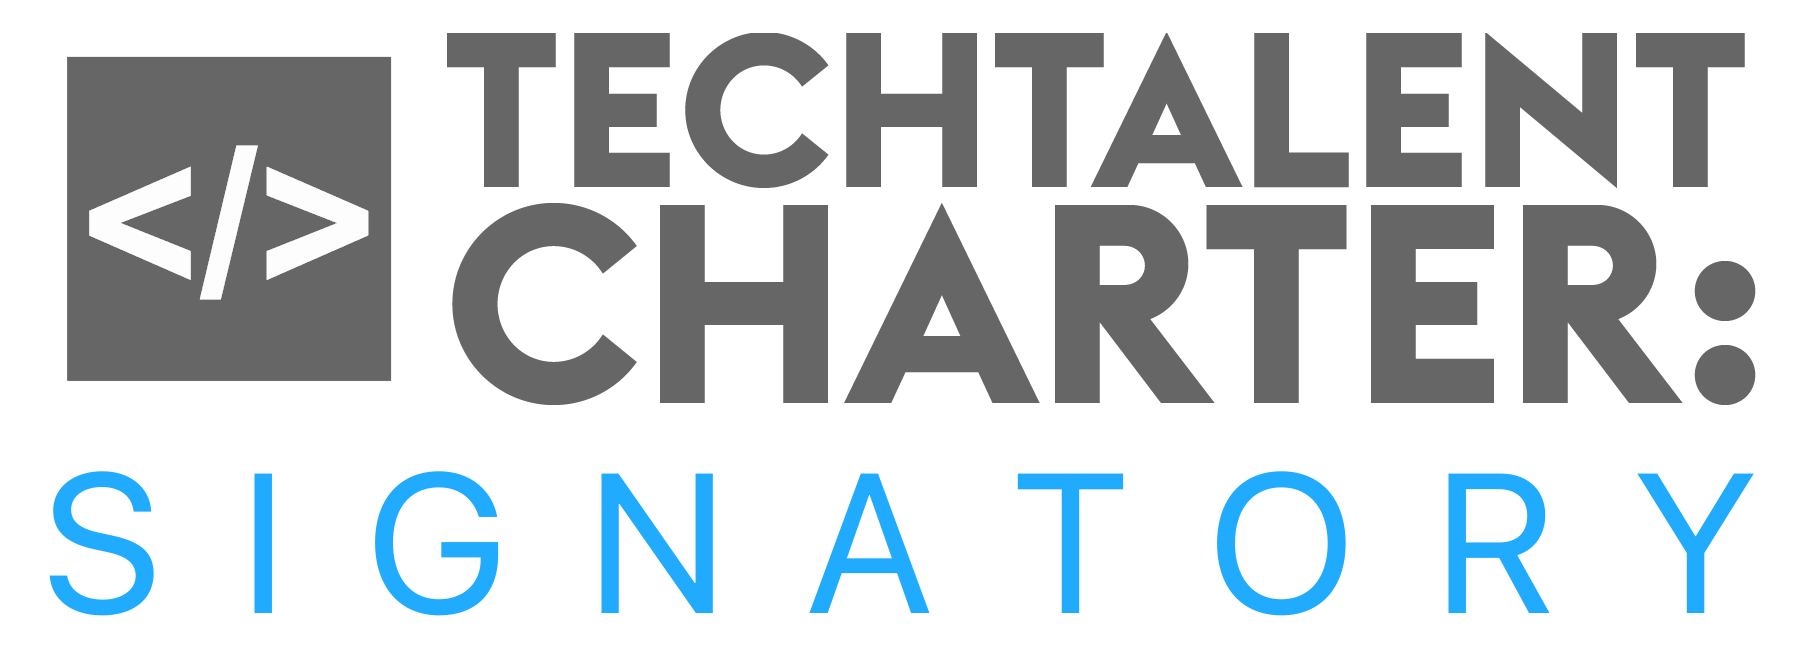 We're a signatory to the Tech Talent Charter